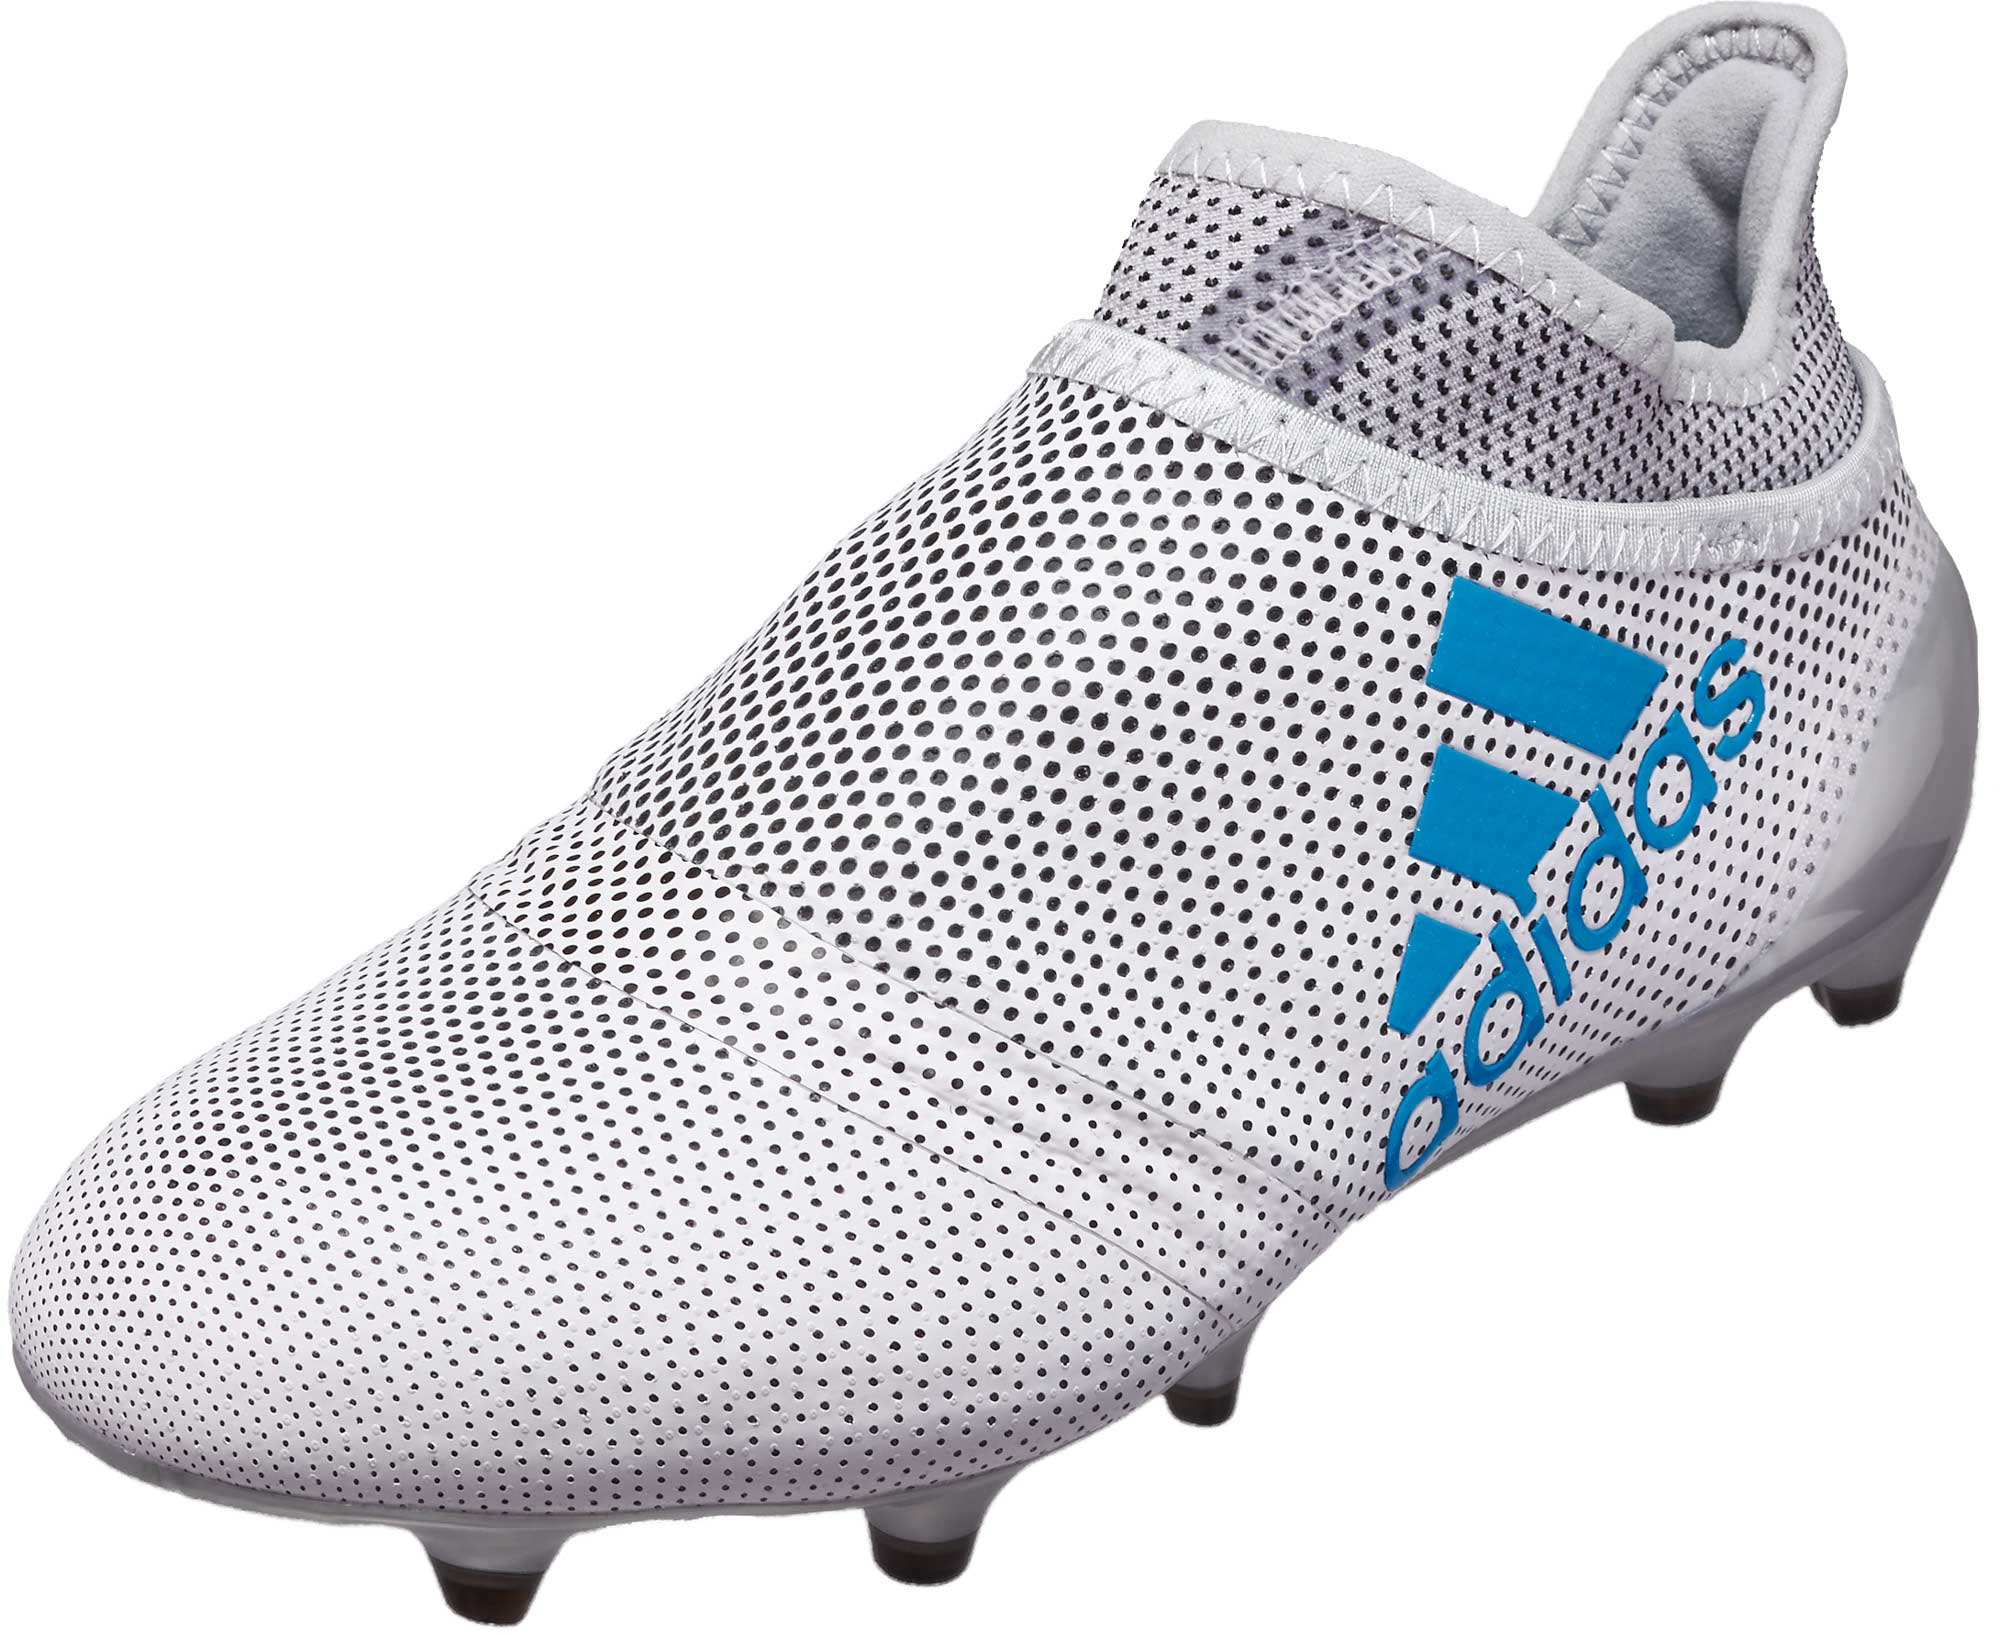 86f5c43603ed adidas Kids X 17+ Purechaos FG Soccer Cleats - White & Energy Blue ...